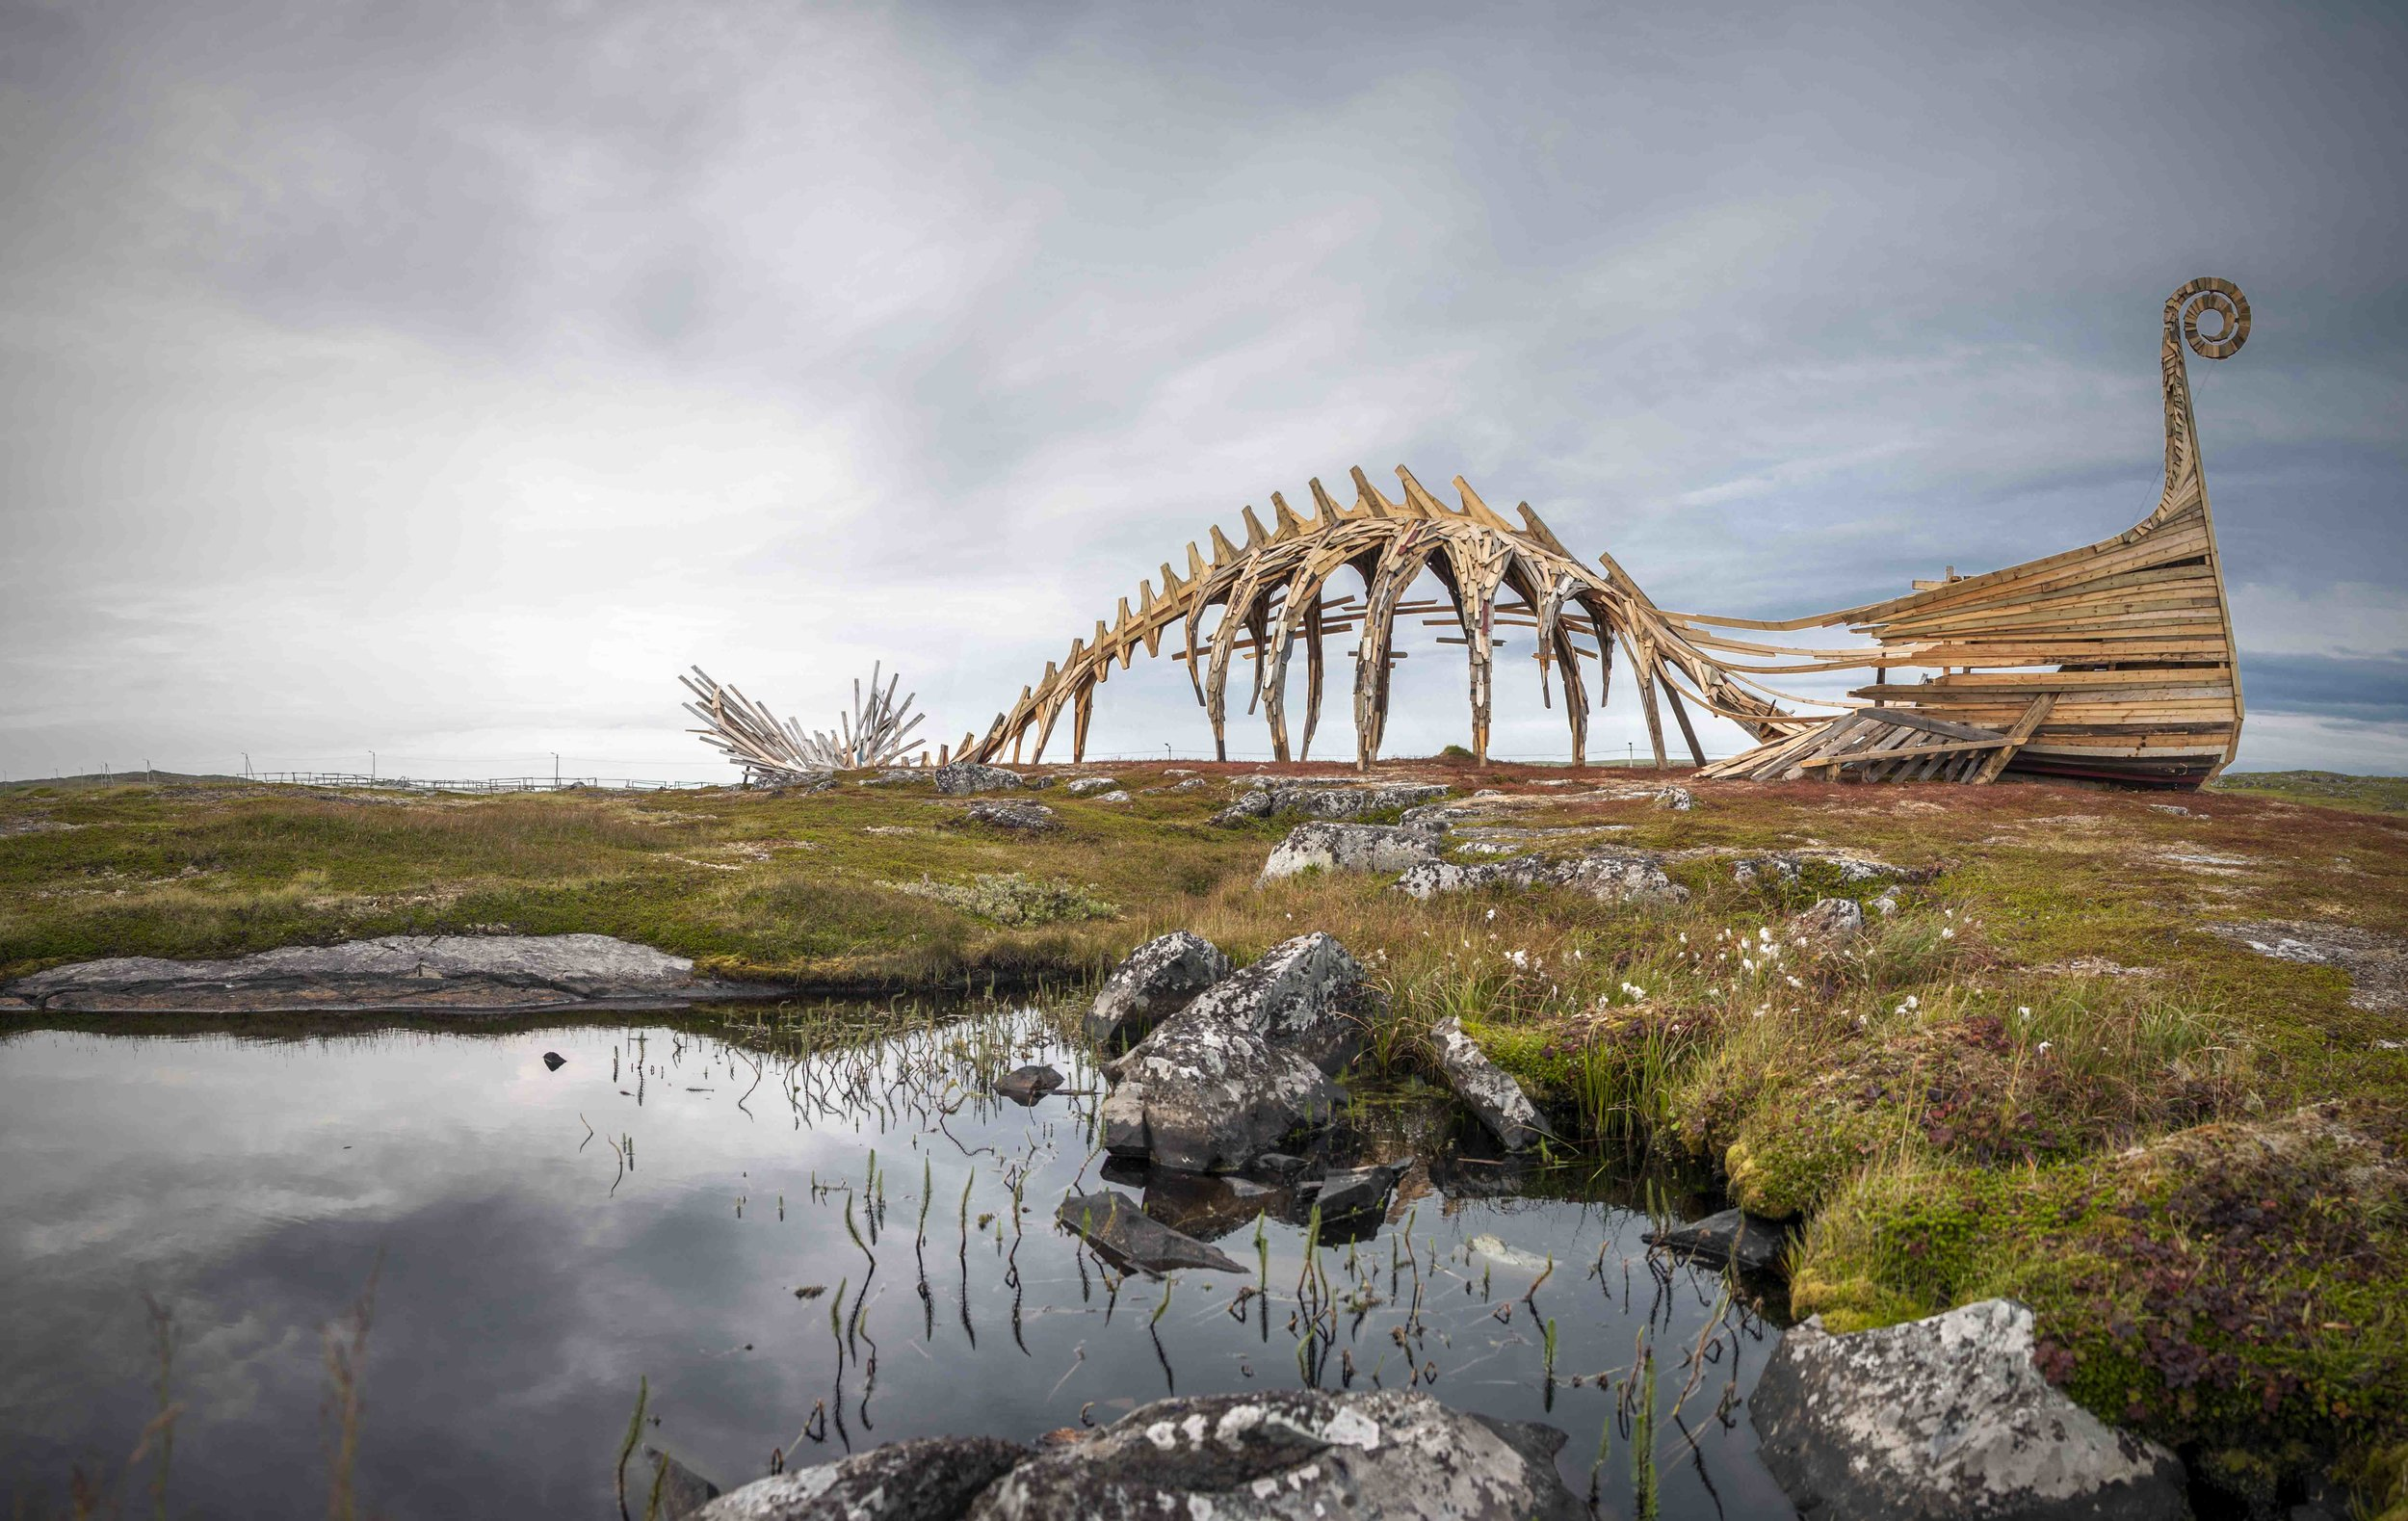 Made viking ship dragon whale in Vardø made by Russians from Arkhangelsk